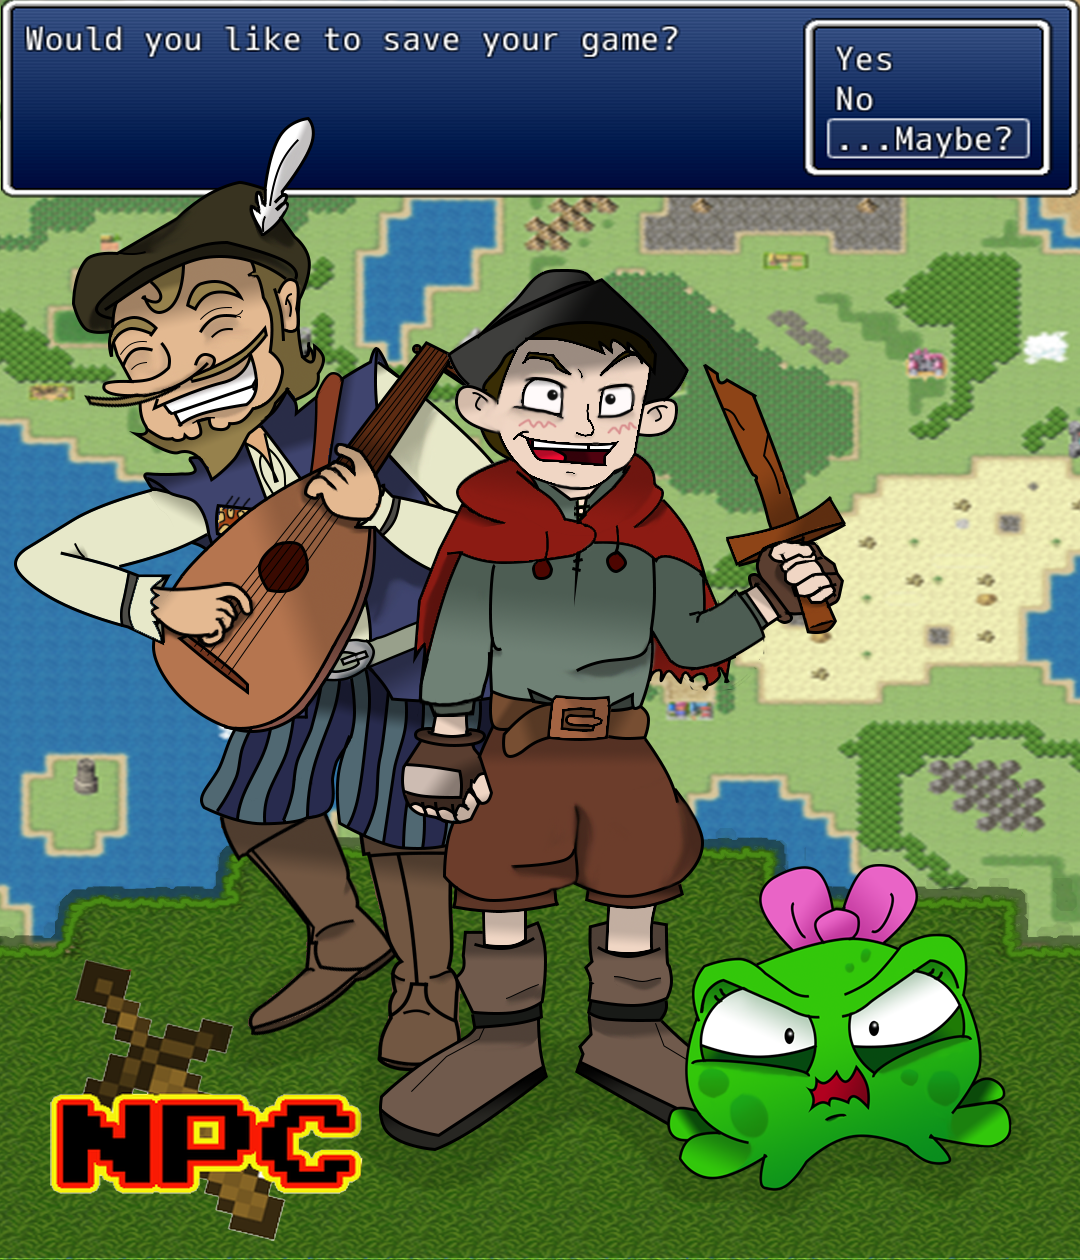 NPC - Bax was a perfectly happy background character in the starter village of Highdale. Standing motionless behind a counter was all he ever knew. That was until Sir Adwin, the hero of Bluehaven, came into his shop and insulted the wooden swords they sold. Now Bax and his growing party of misfits and non-players are on a quest to hunt down this Knight through a video game inspired world, and show him that there is more to his swords, and himself, than meets the eye.Bax - A young shopkeeper with an axe to grind, well actually a wooden sword.Menu - Bax's otherworldly guide on his quest through the unknown land's of Bluehaven.Squib - A foul-mouthed slime child who joins Bax on his quest to find Sir Adwin.Trumbly - A mysterious bard. Not much is known about him, but he's always just a little too happy.Lucia - Witch of the desert, who also holds the power to harvest broken Menus.Wyatt - Bax's taller, more handsome older brother. He likes to think he's awkward, but in like, an endearing way.